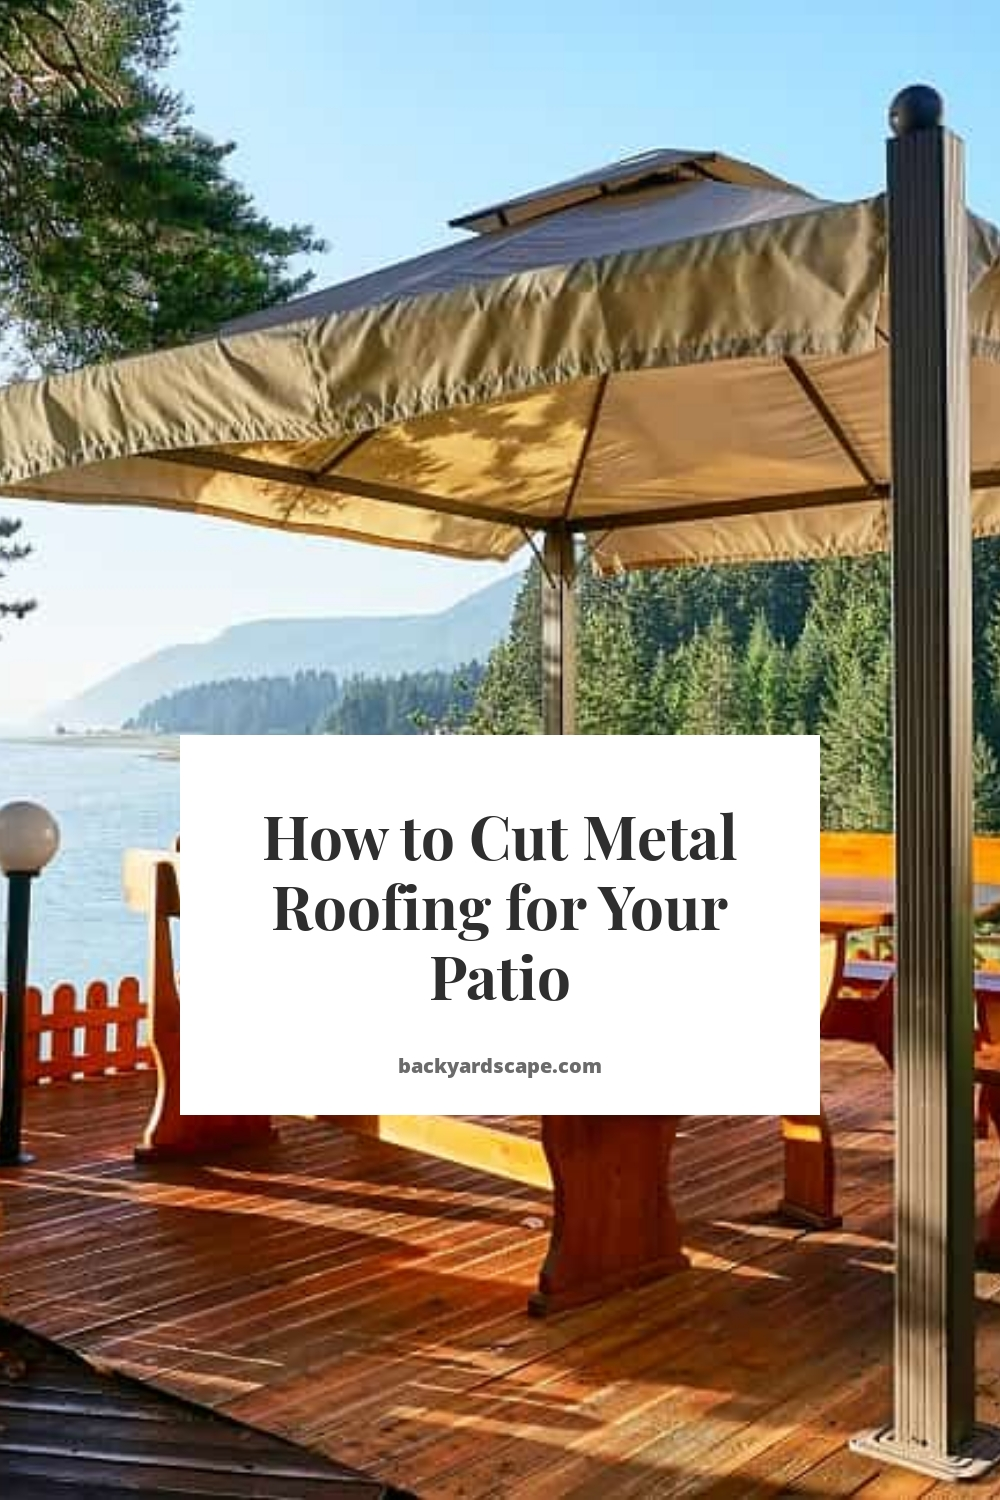 How to Cut Metal Roofing for Your Patio